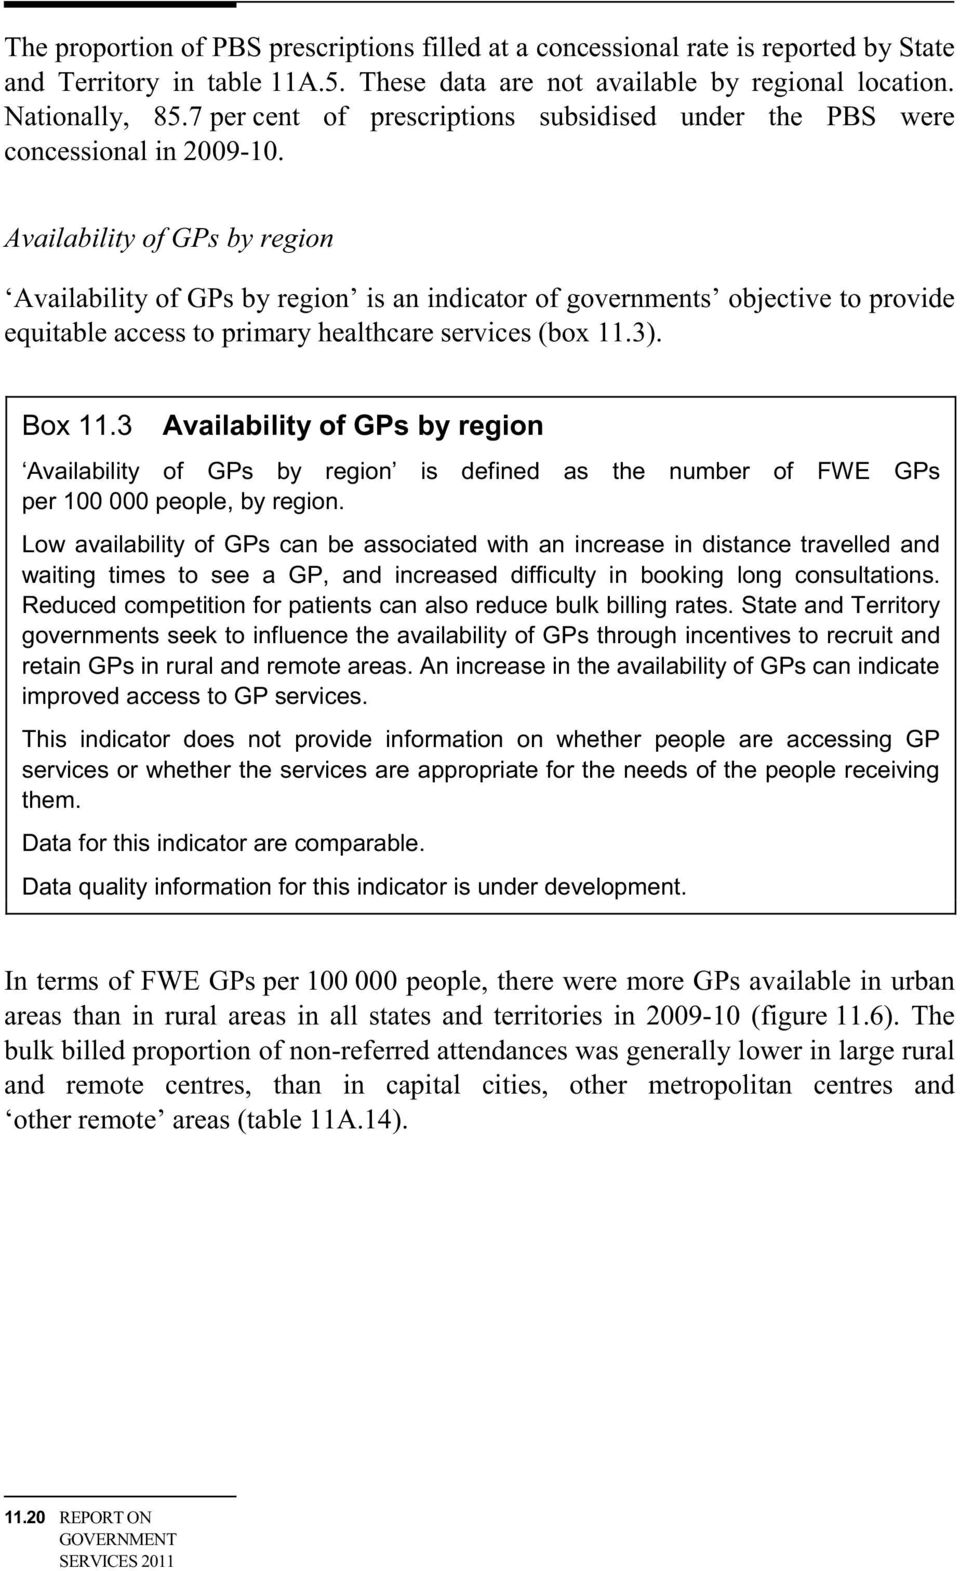 Availability of GPs by region Availability of GPs by region is an indicator of governments objective to provide equitable access to primary healthcare services (box 11.3). Box 11.